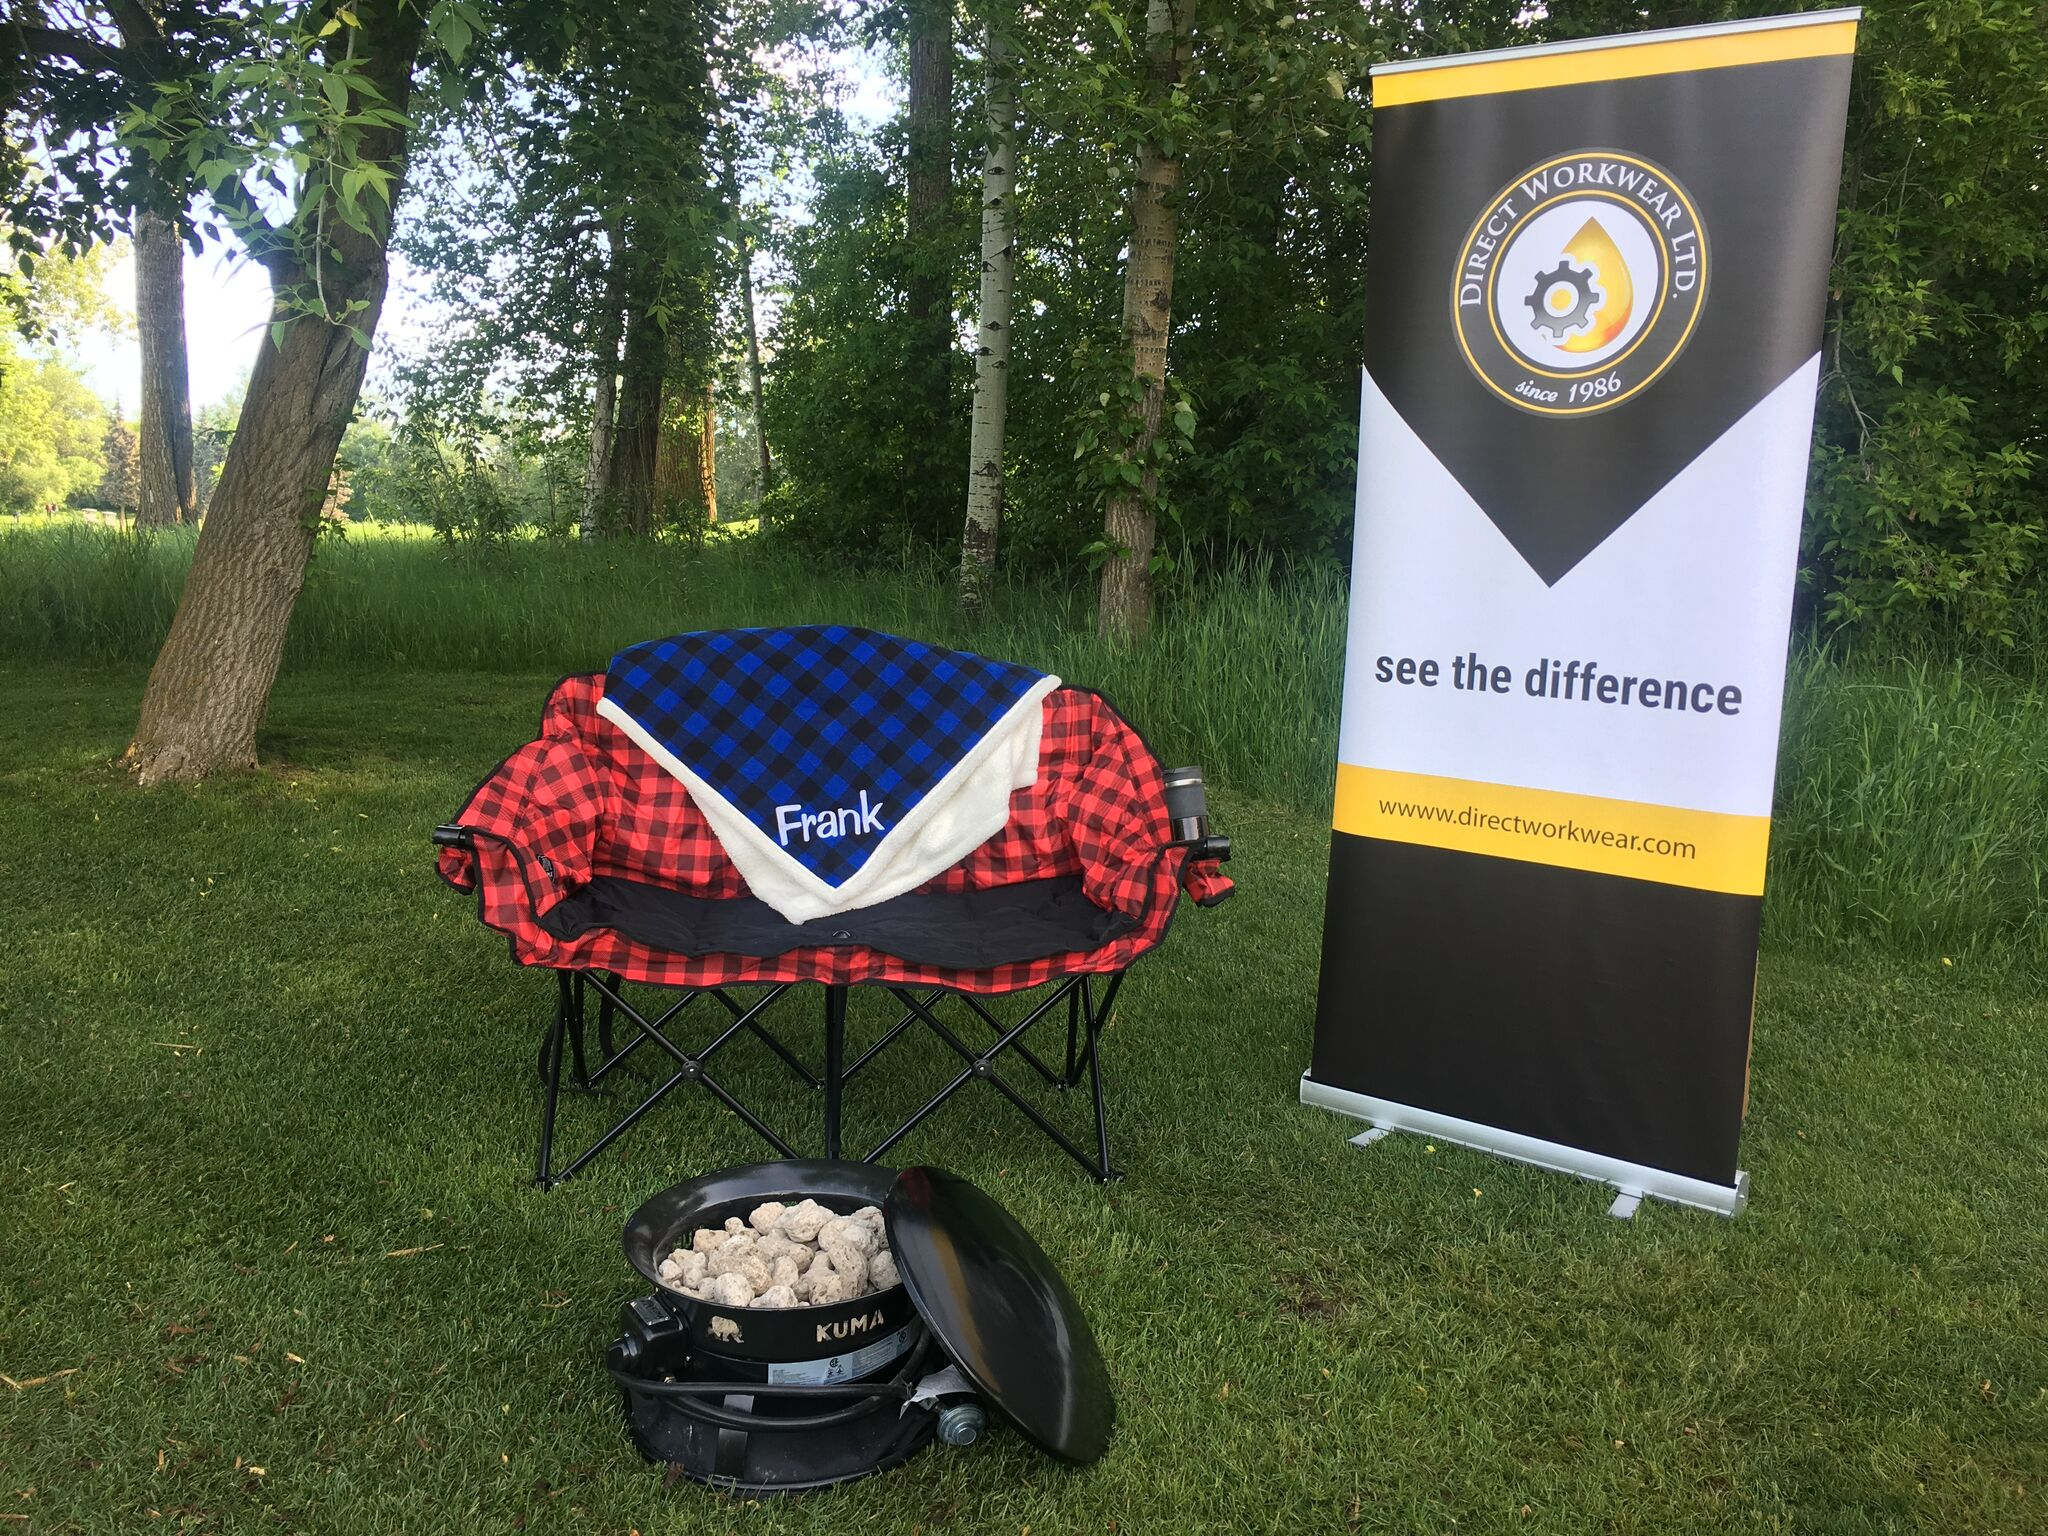 Direct Workwear Attends the tsn 1260 golf tournament